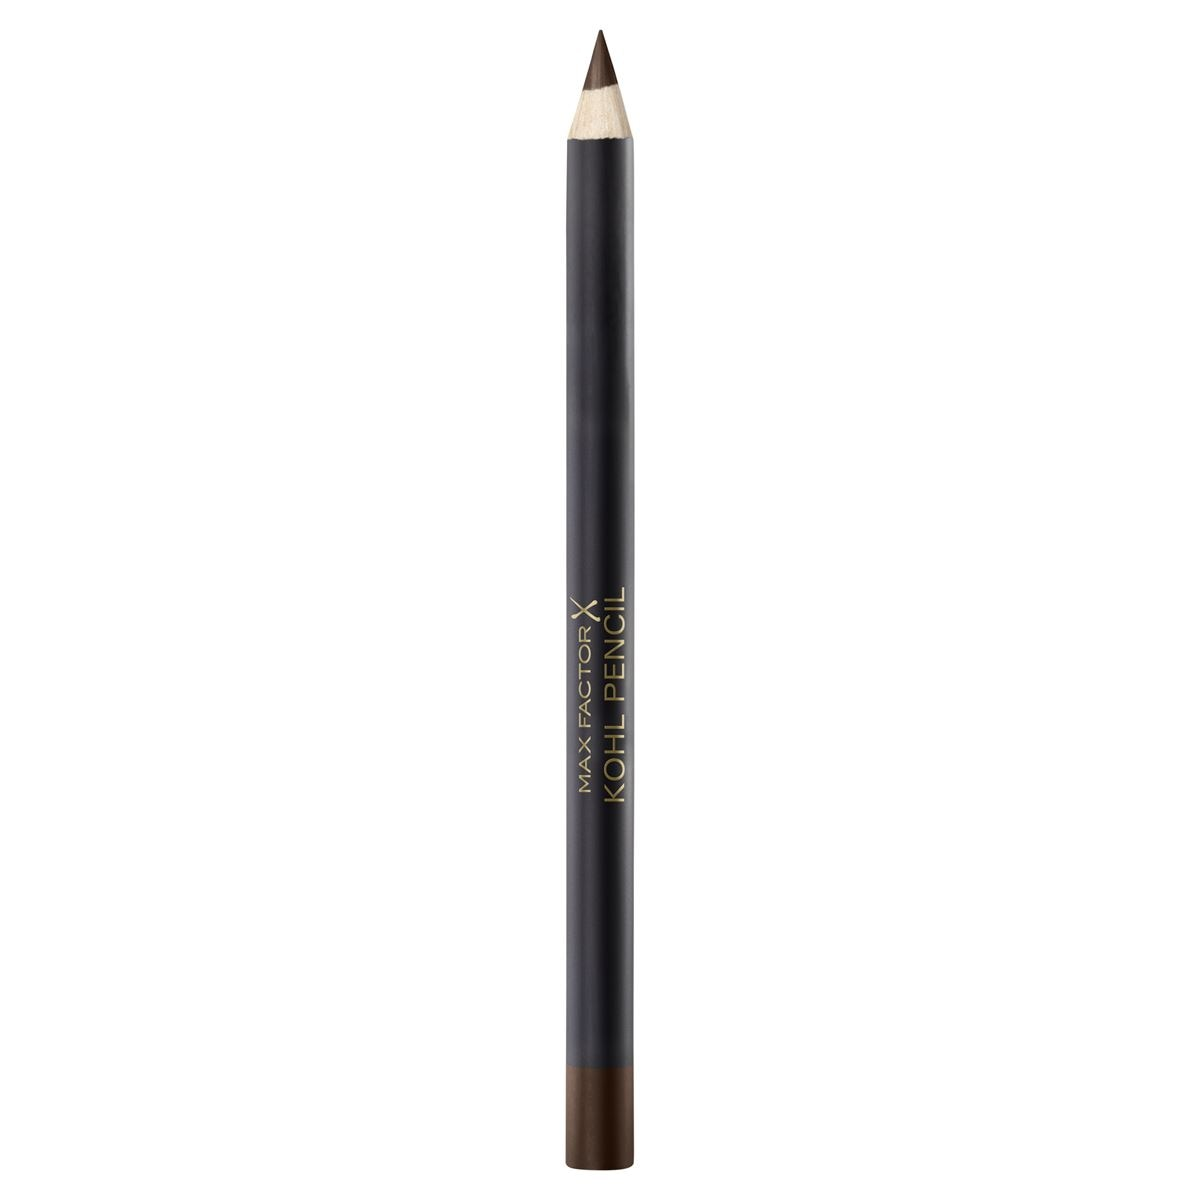 Kohl pencil brown  - Sanborns